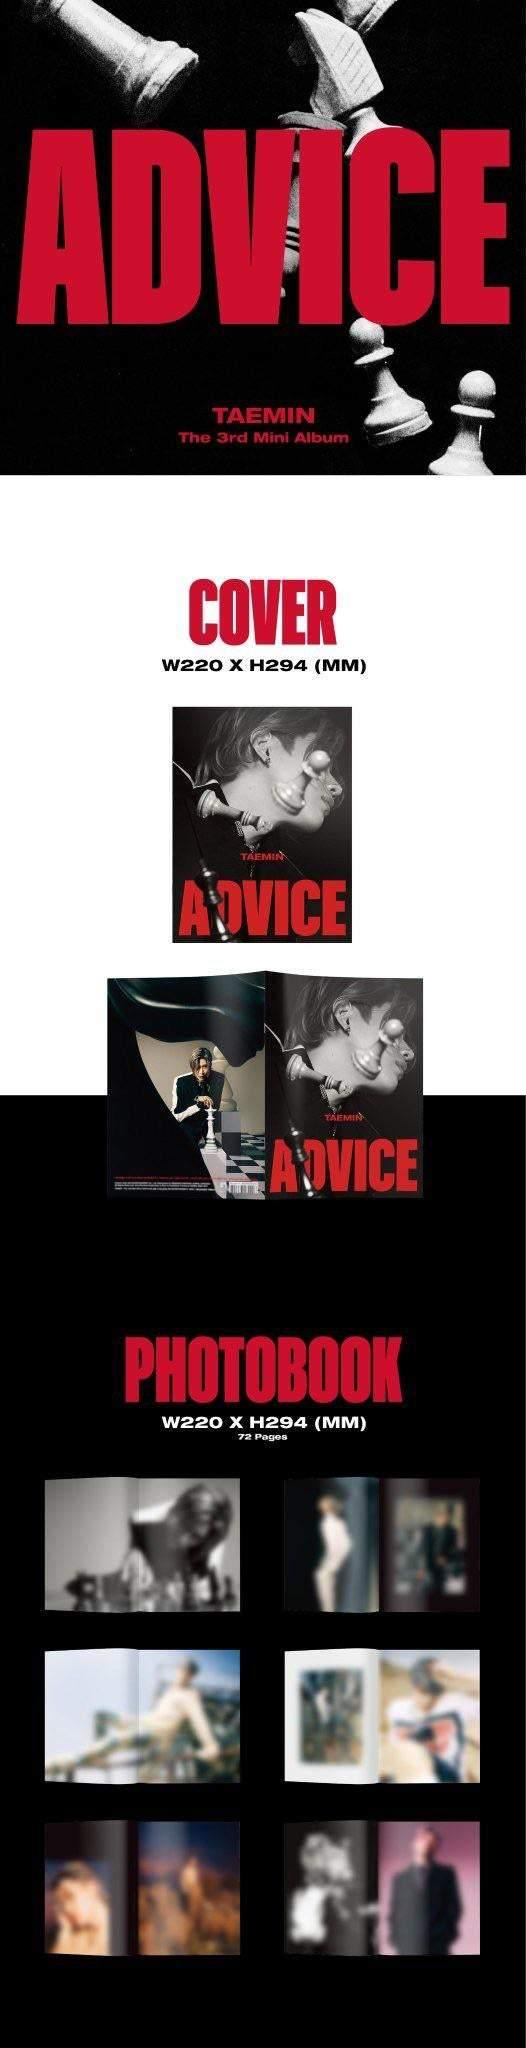 TAEMIN - ADVICE (3RD MINI ALBUM) - Pre-Order